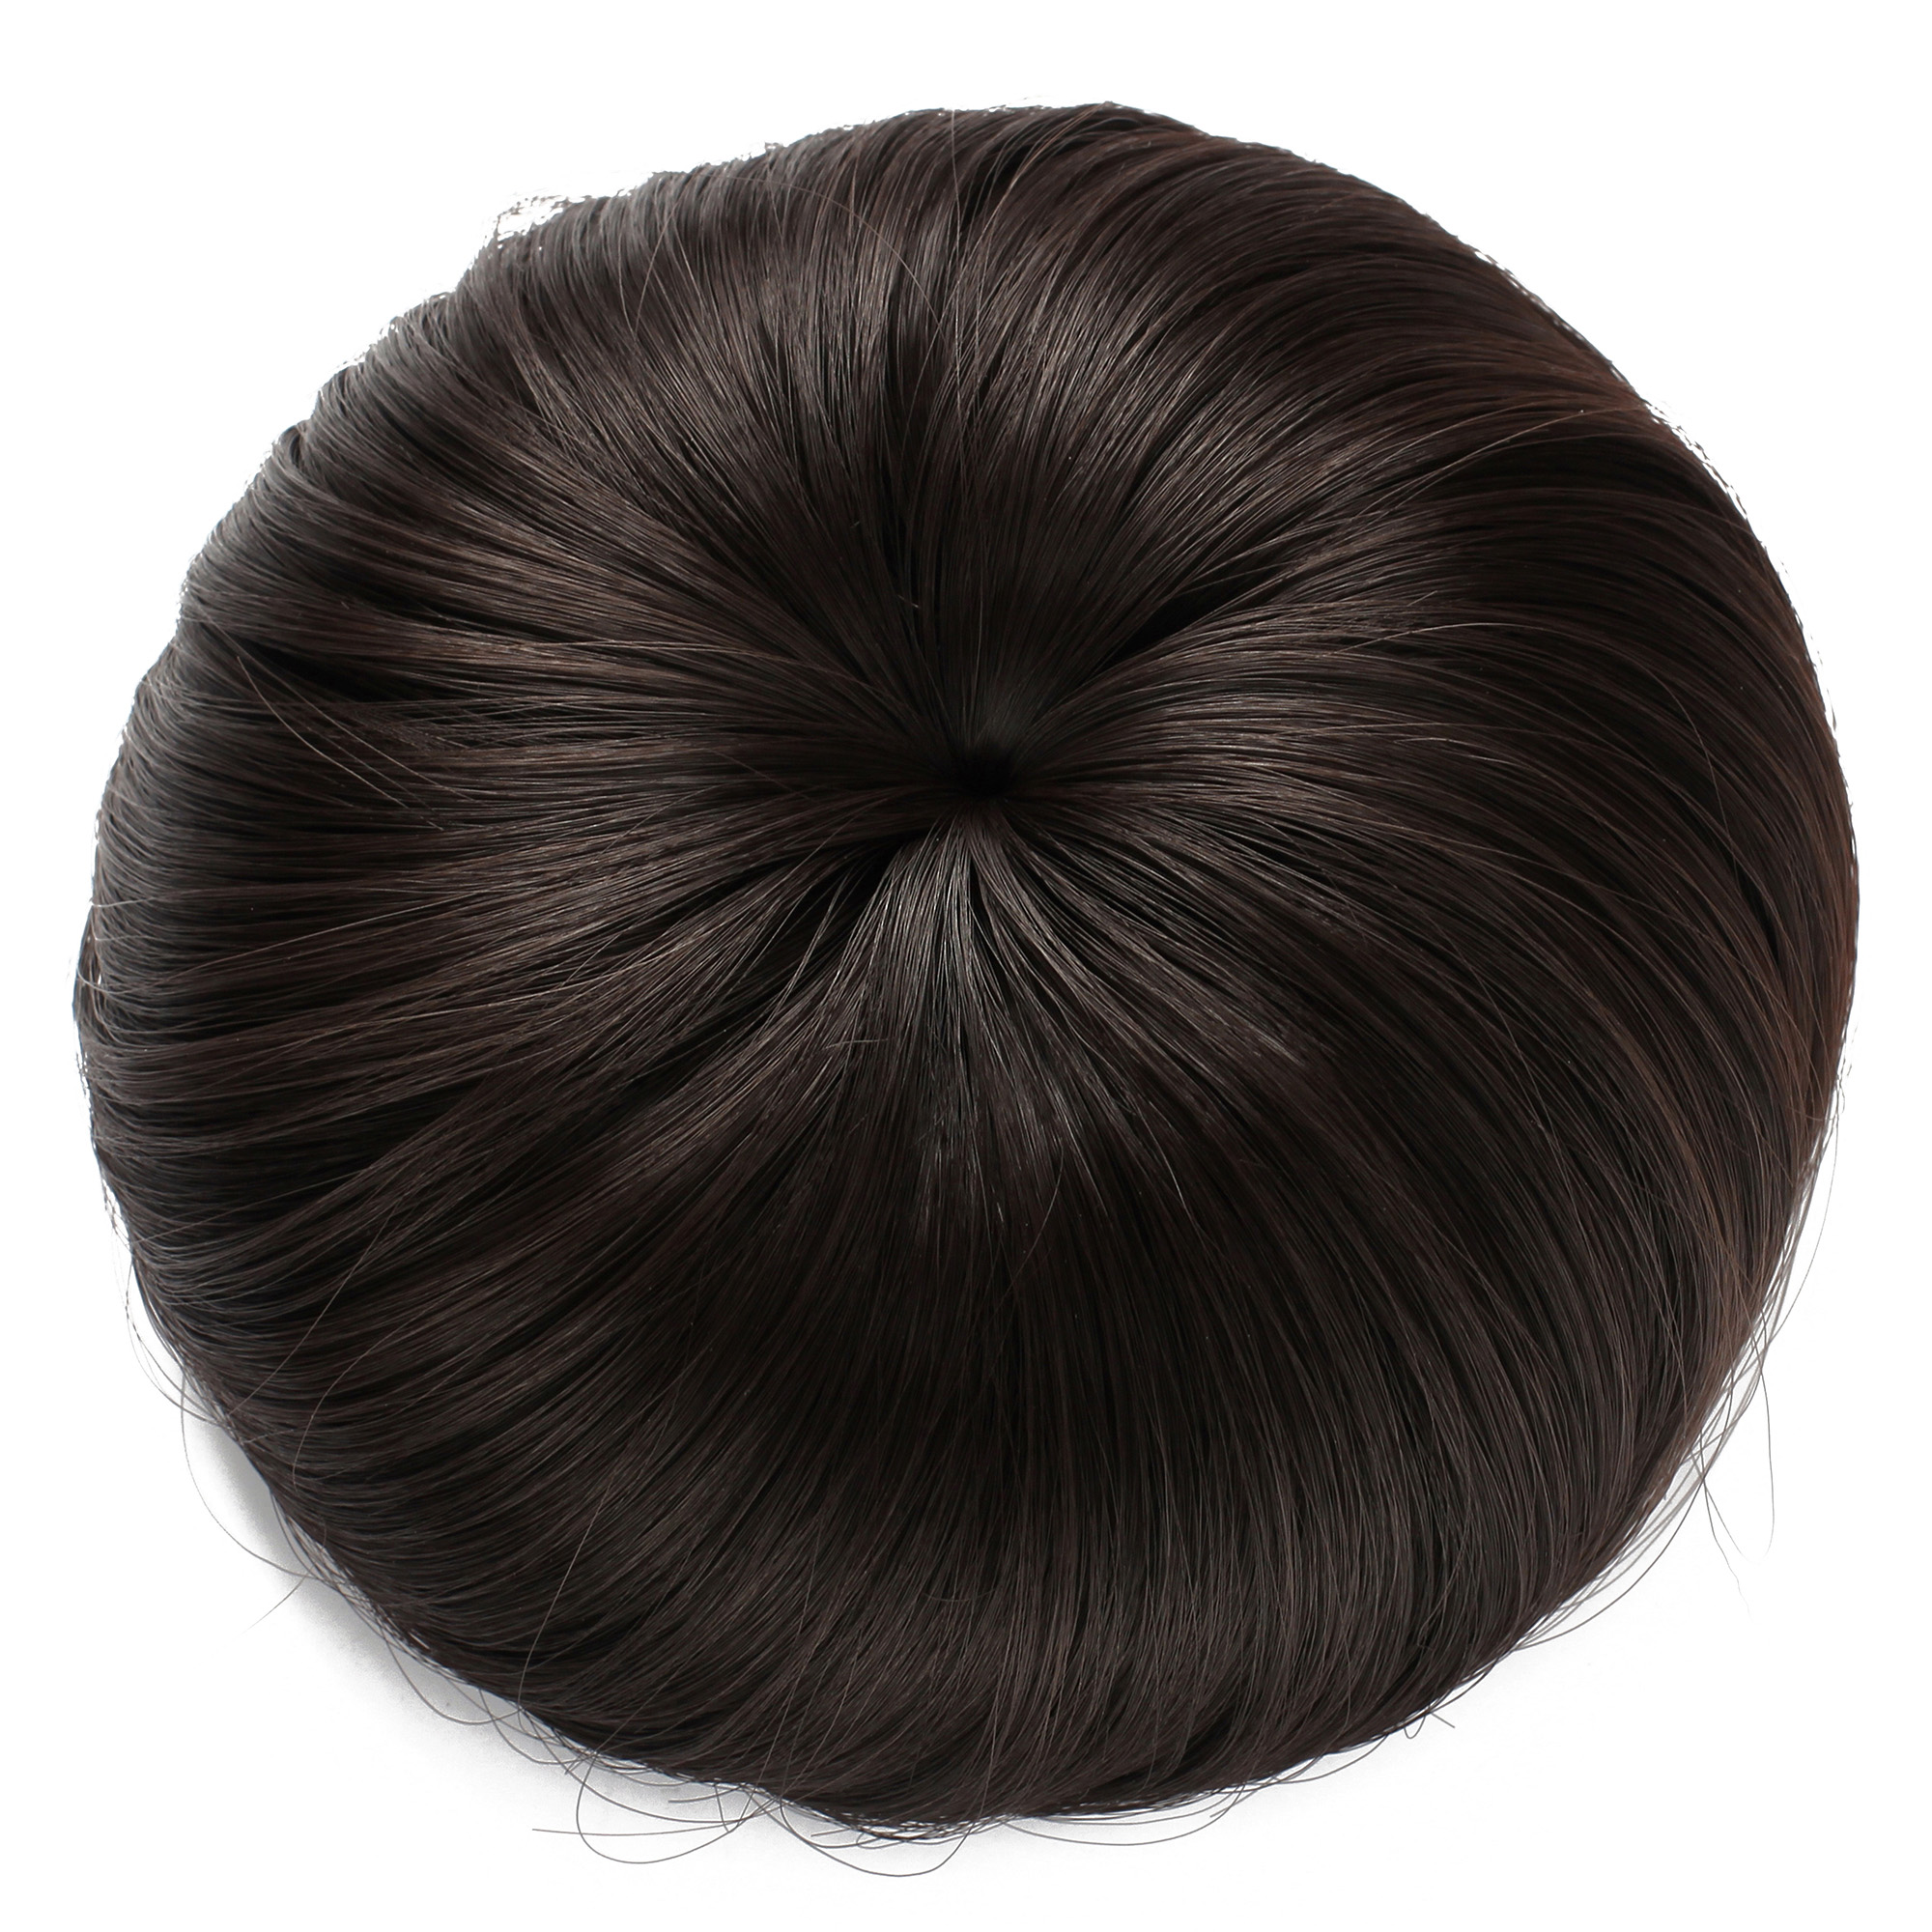 Onedor Synthetic Hair Bun Extension Donut